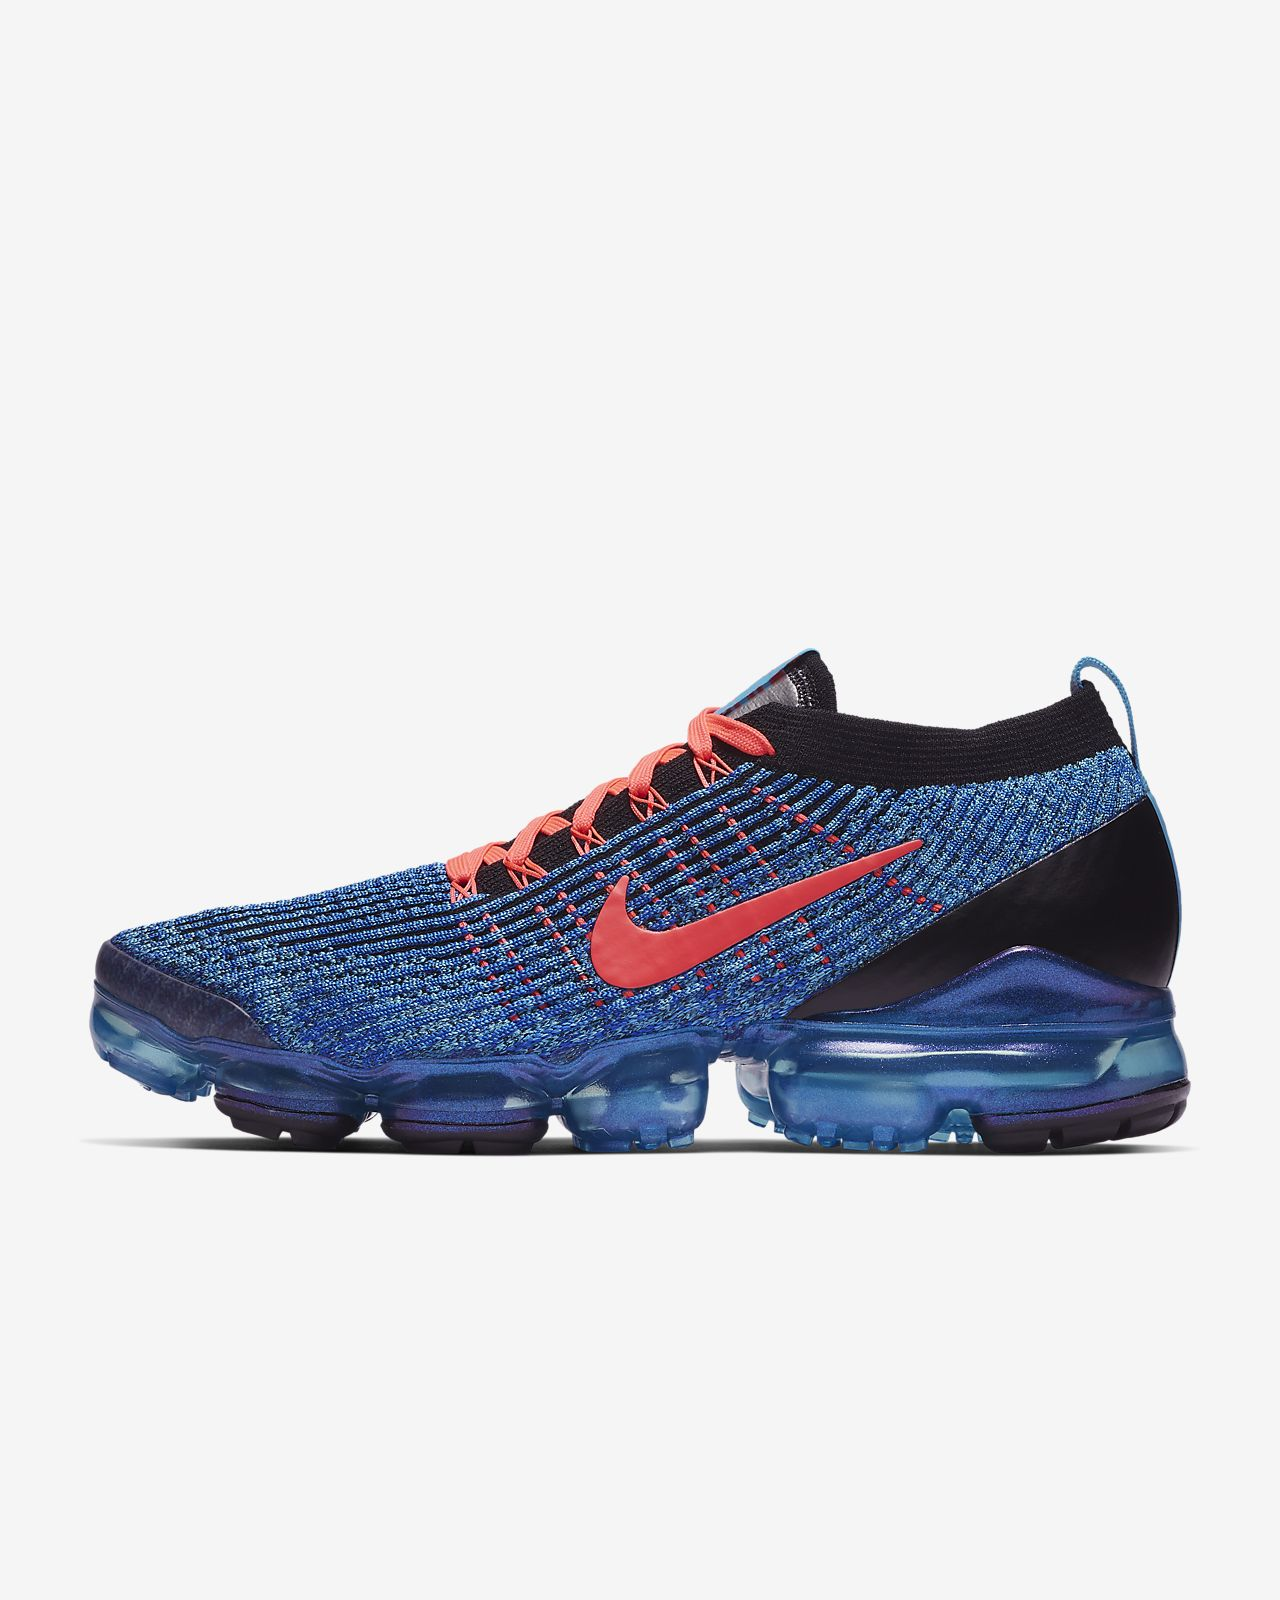 buy online 4c417 0a82d ... Chaussure Nike Air VaporMax Flyknit 3 pour Homme